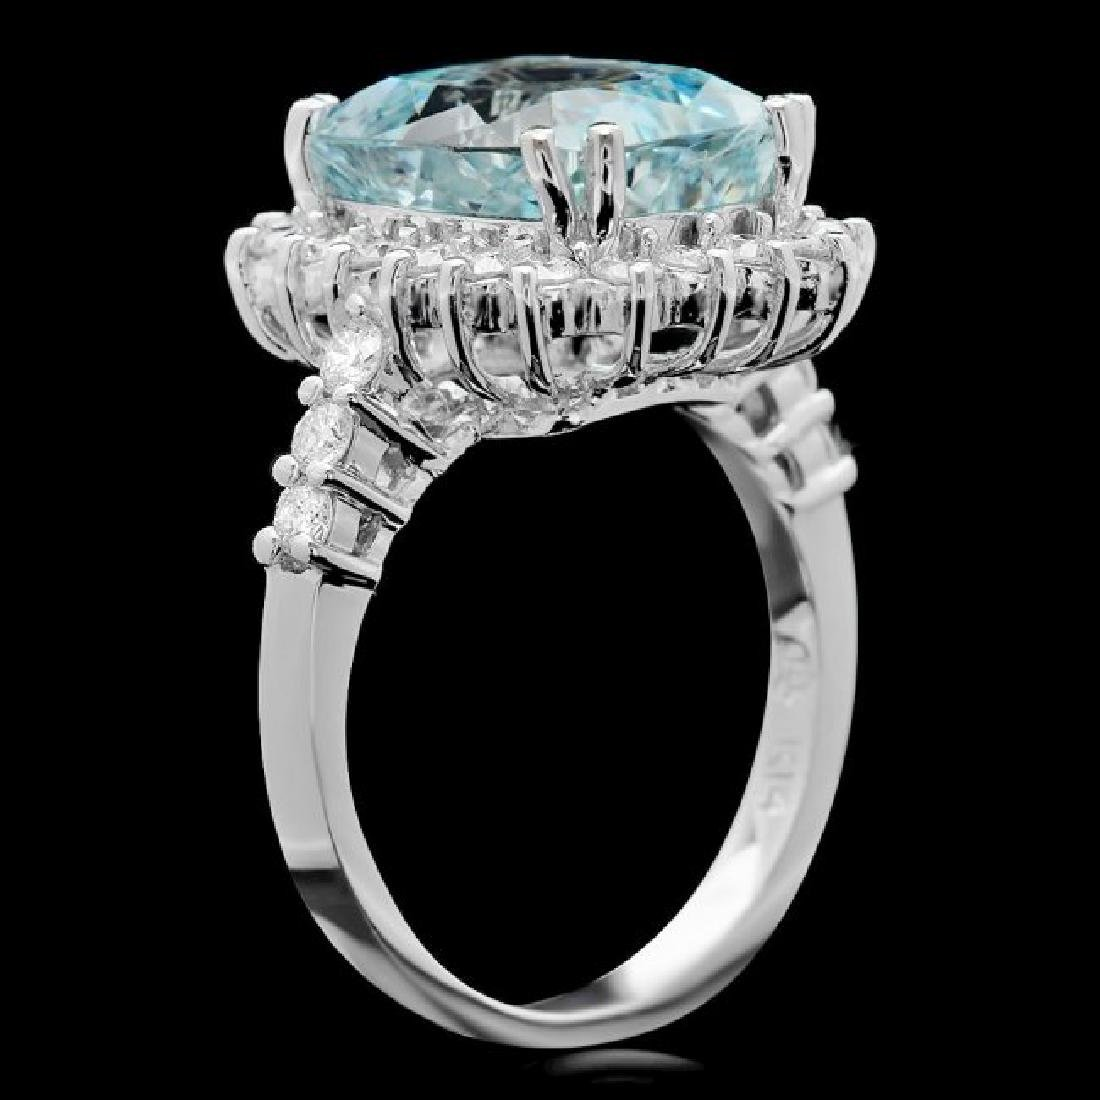 14k Gold 6.00ct Aquamarine 1.00ct Diamond Ring - 3